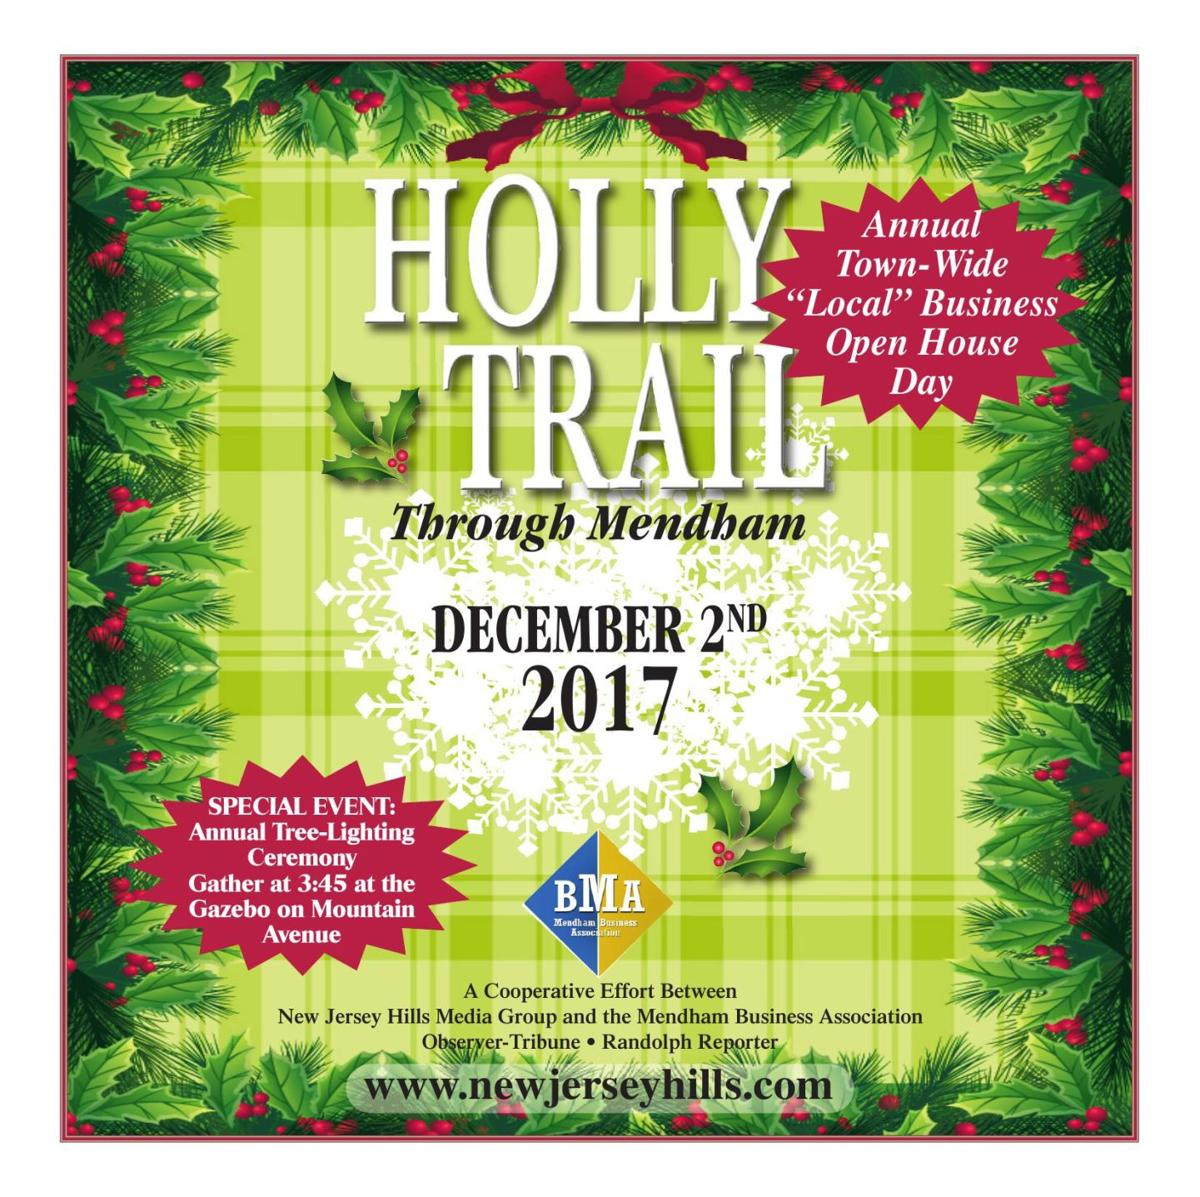 Holly Trail - November 23, 2017